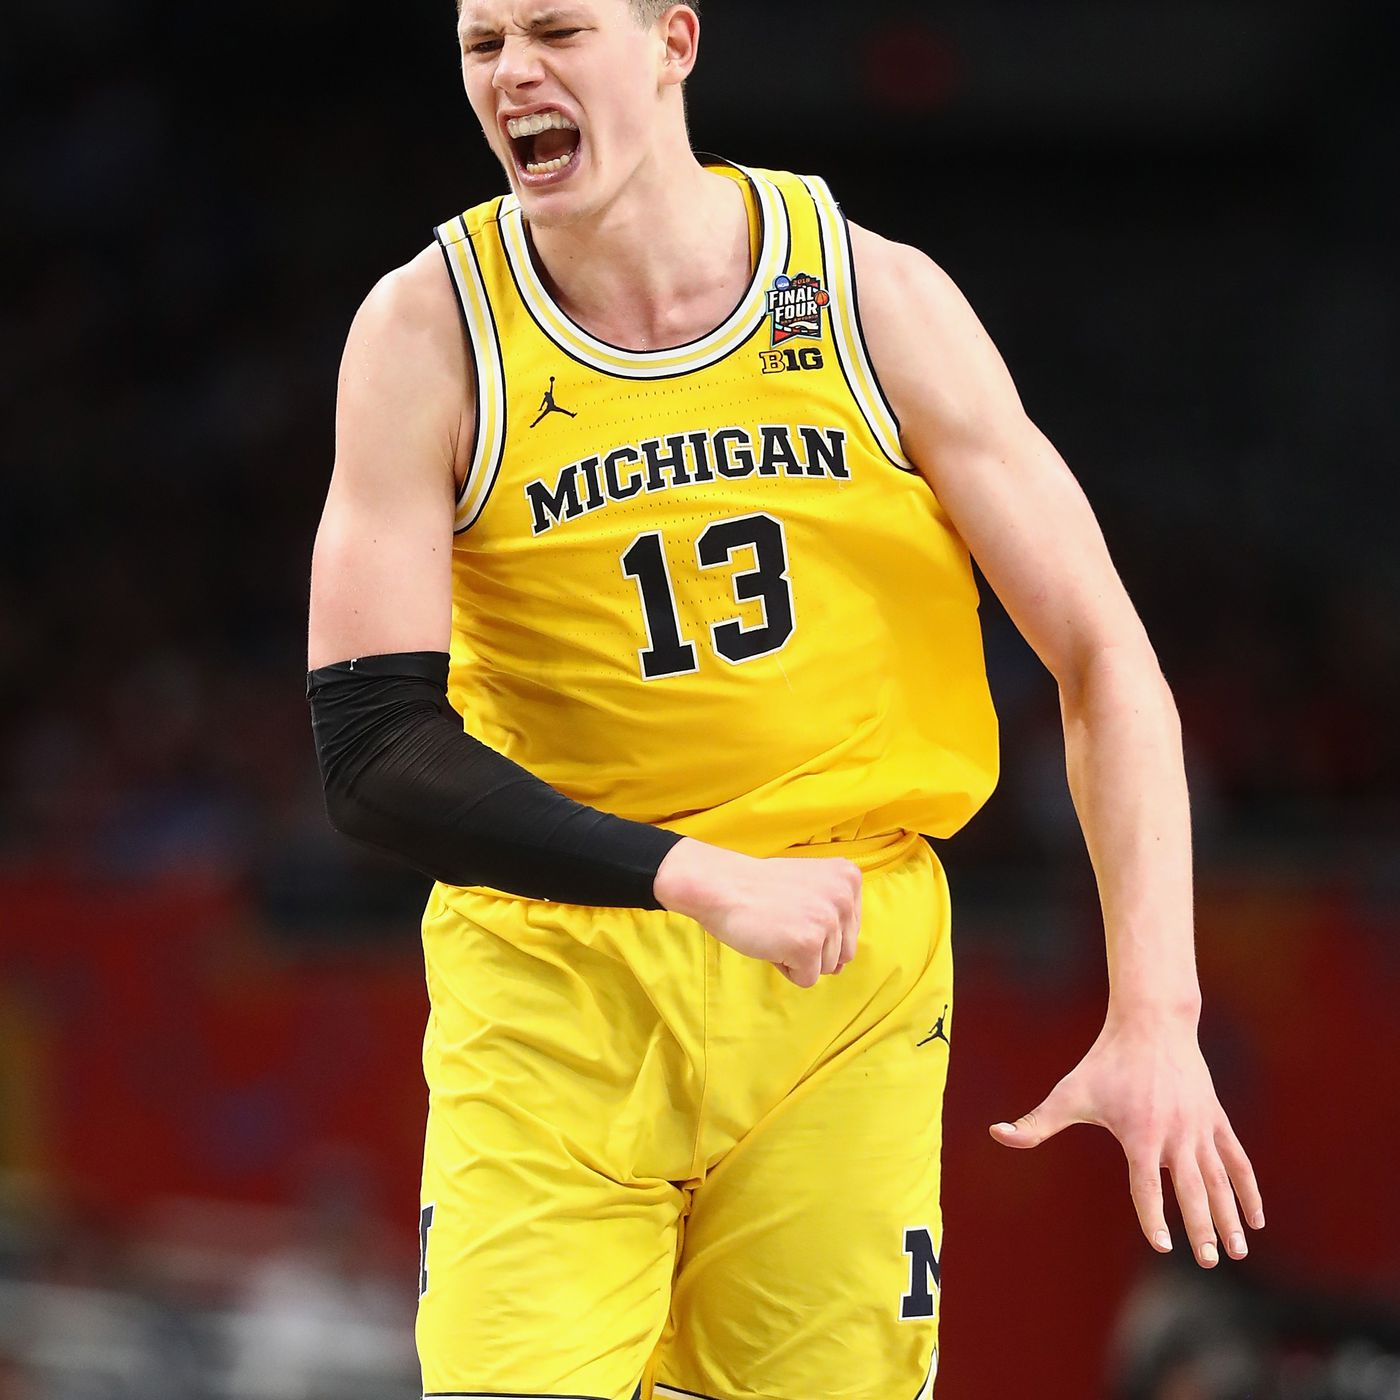 714de0903 NBA Draft 2018 scouting report  Michigan big man Moritz Wagner - Peachtree  Hoops